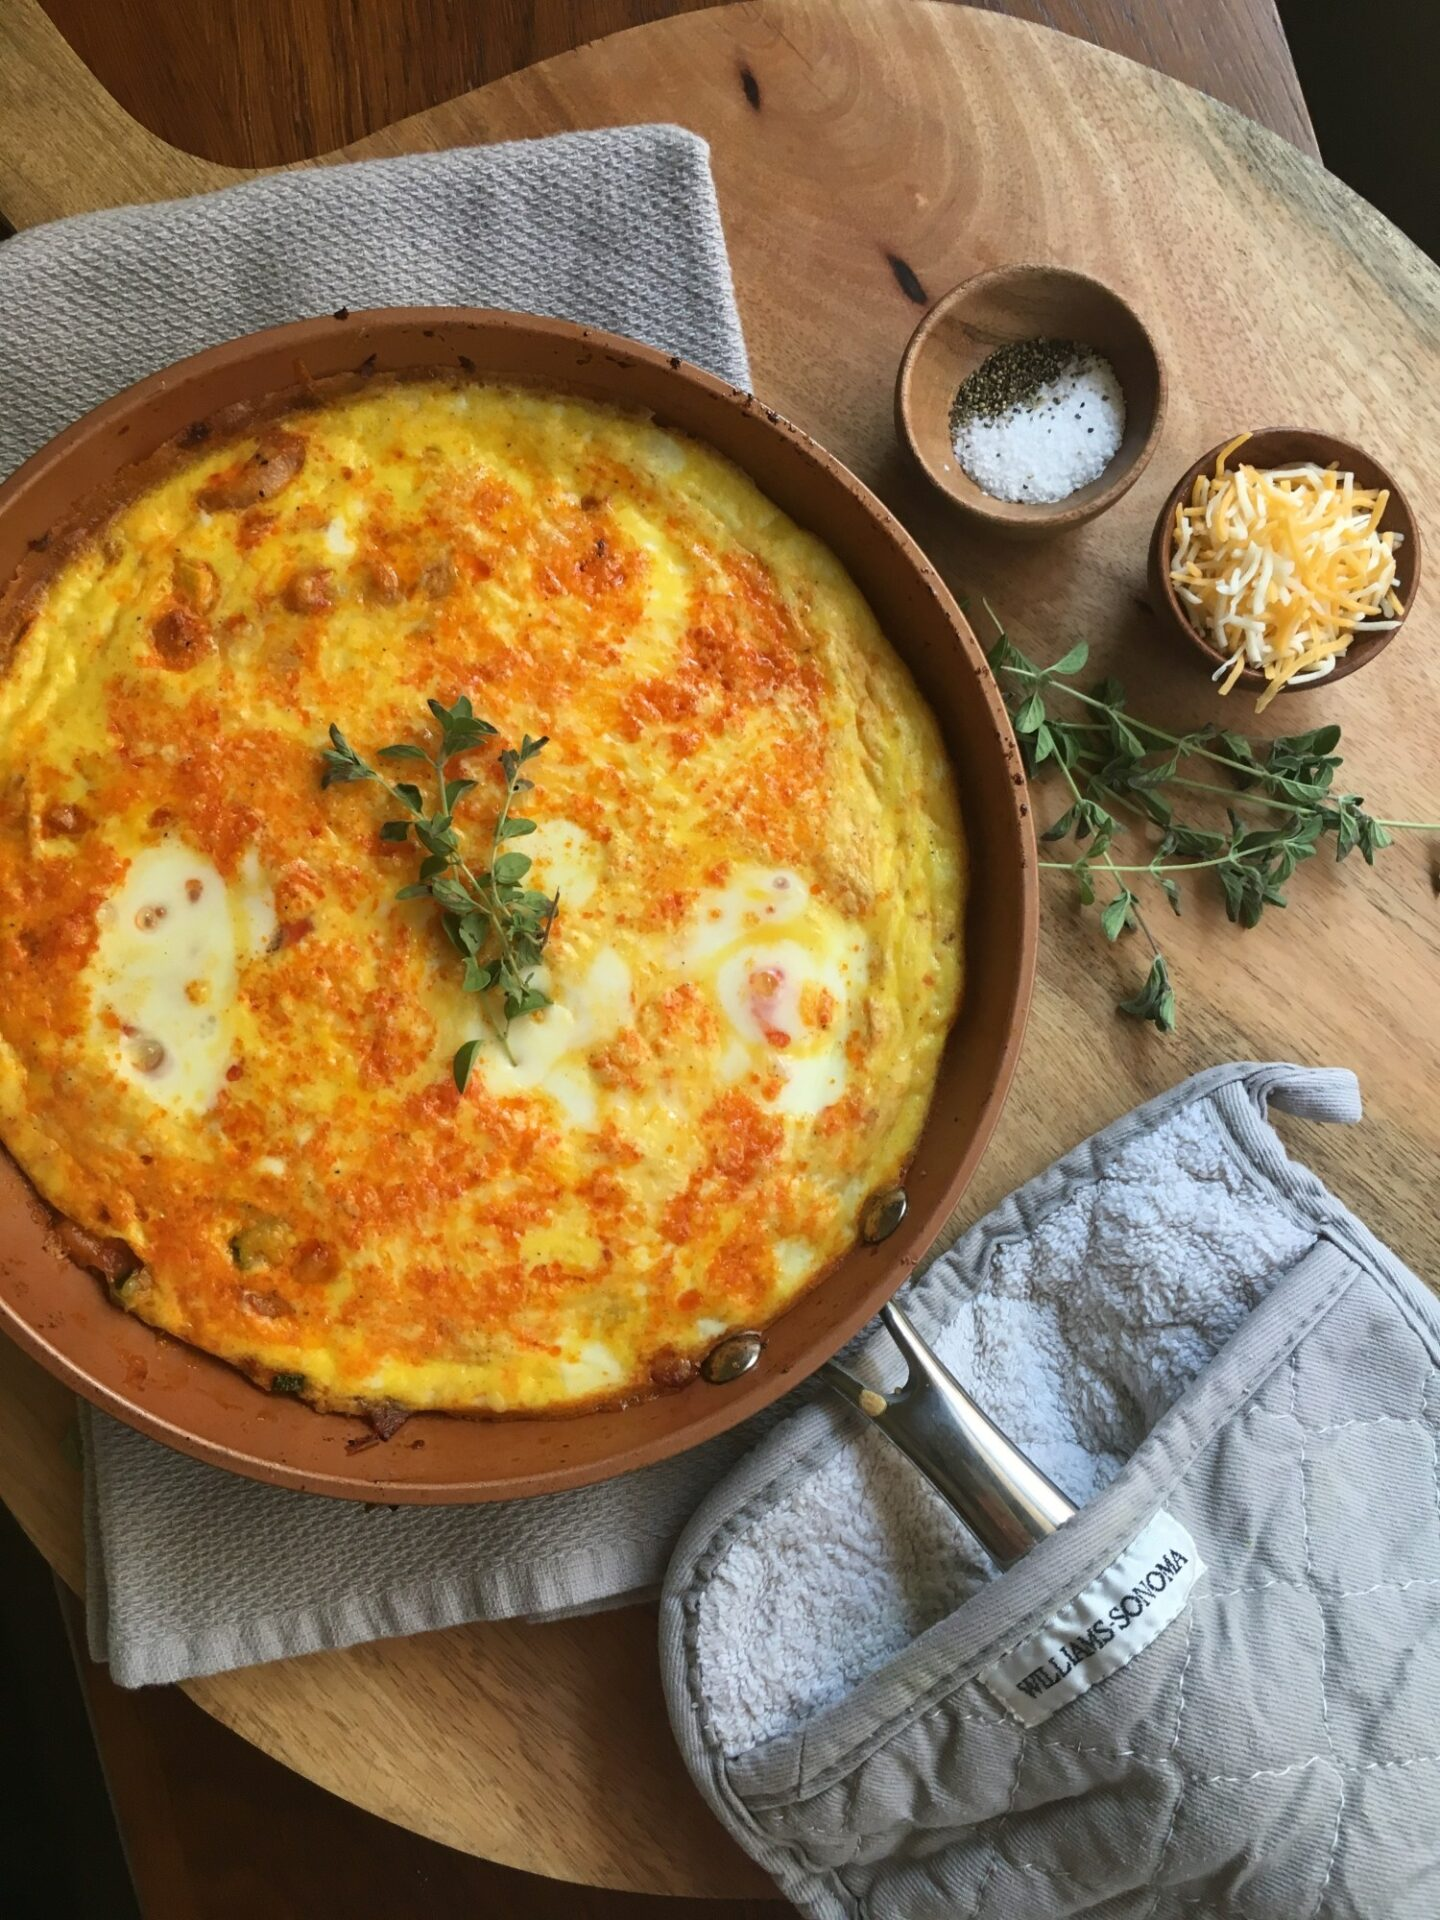 25-Minute Quick and Easy Frittata. Low carb and delicious breakfast casserole for the holiday mornings